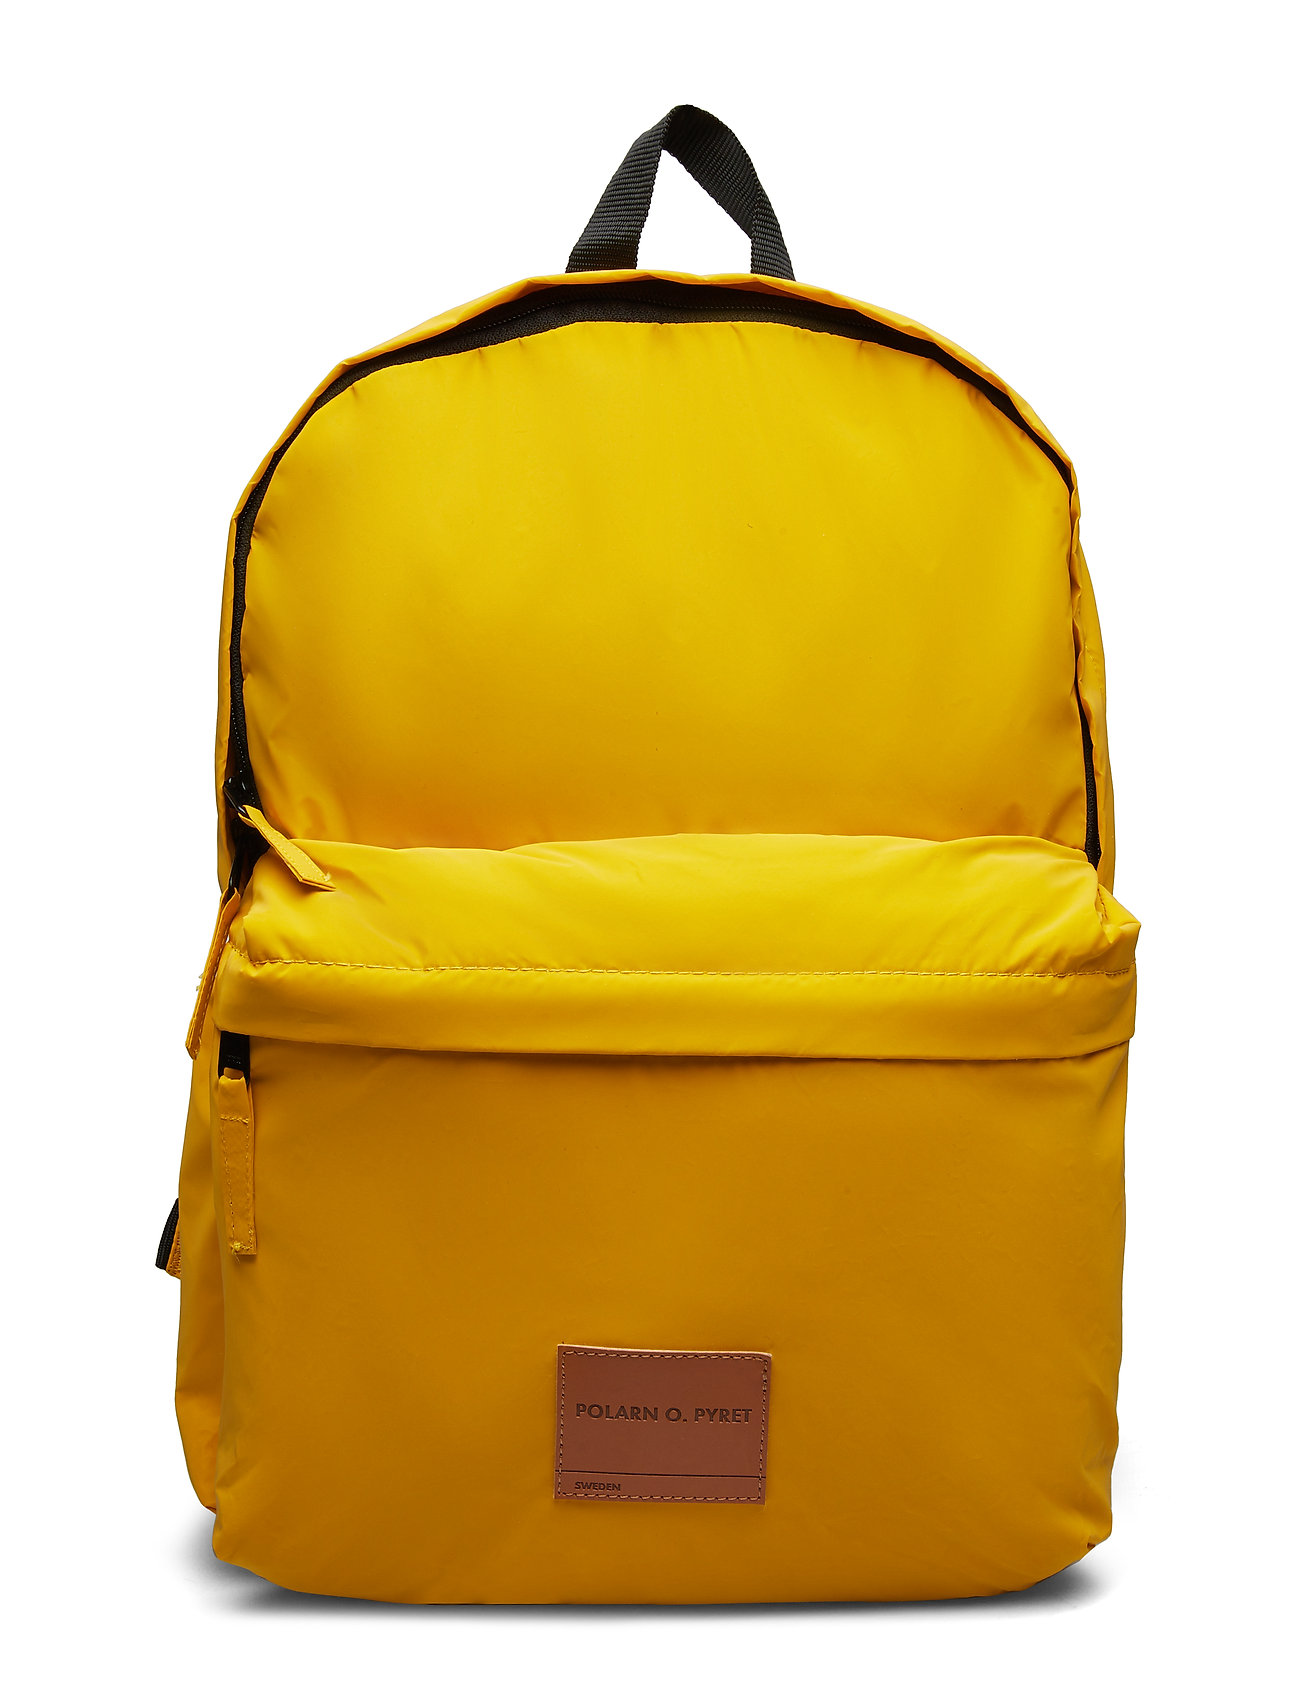 Polarn O. Pyret Backpack w details School - SULPUR